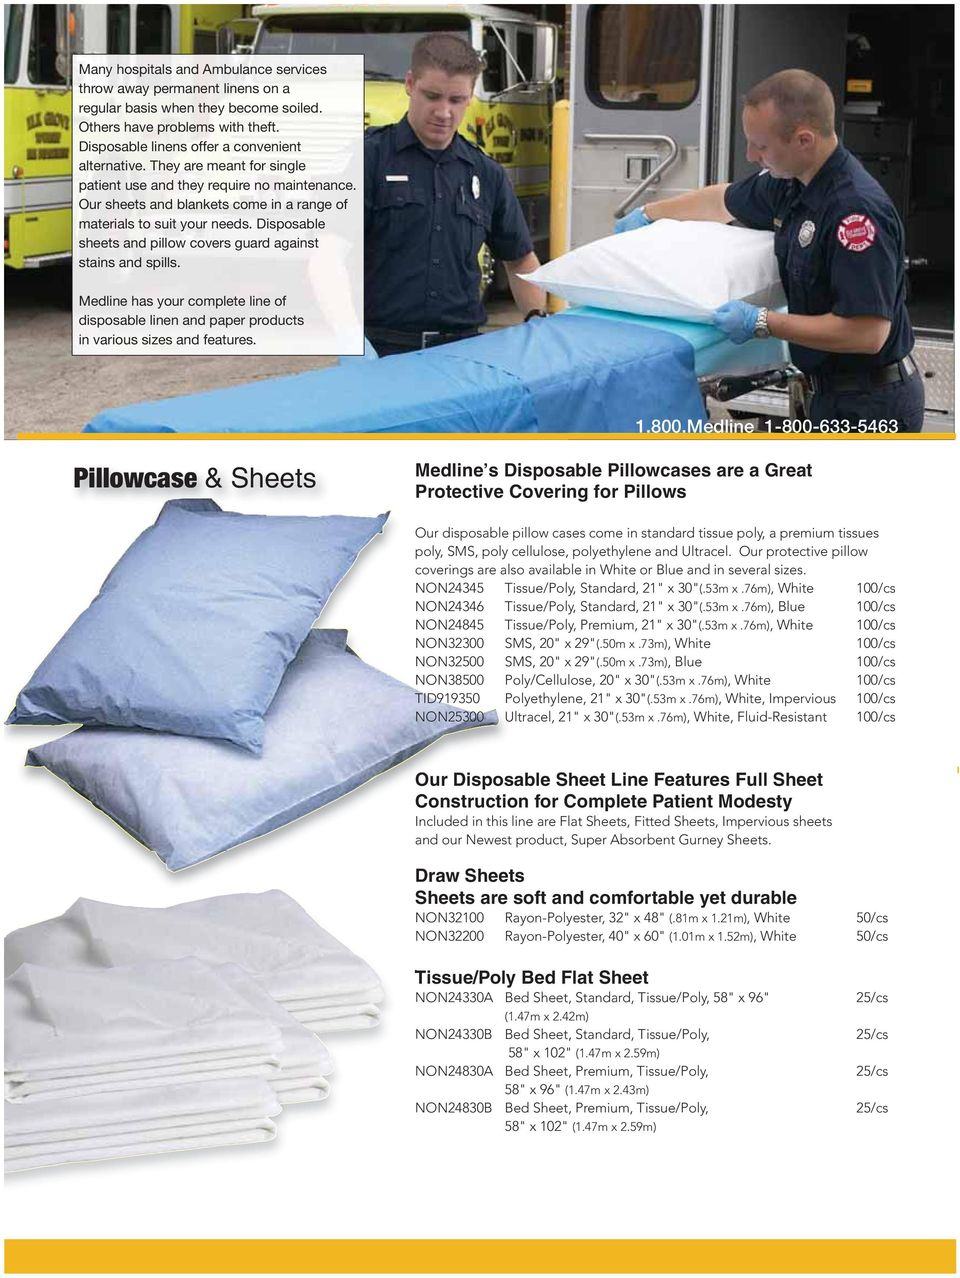 Disposable sheets and pillow covers guard against stains and spills. Medline has your complete line of disposable linen and paper products in various sizes and features. 1.800.